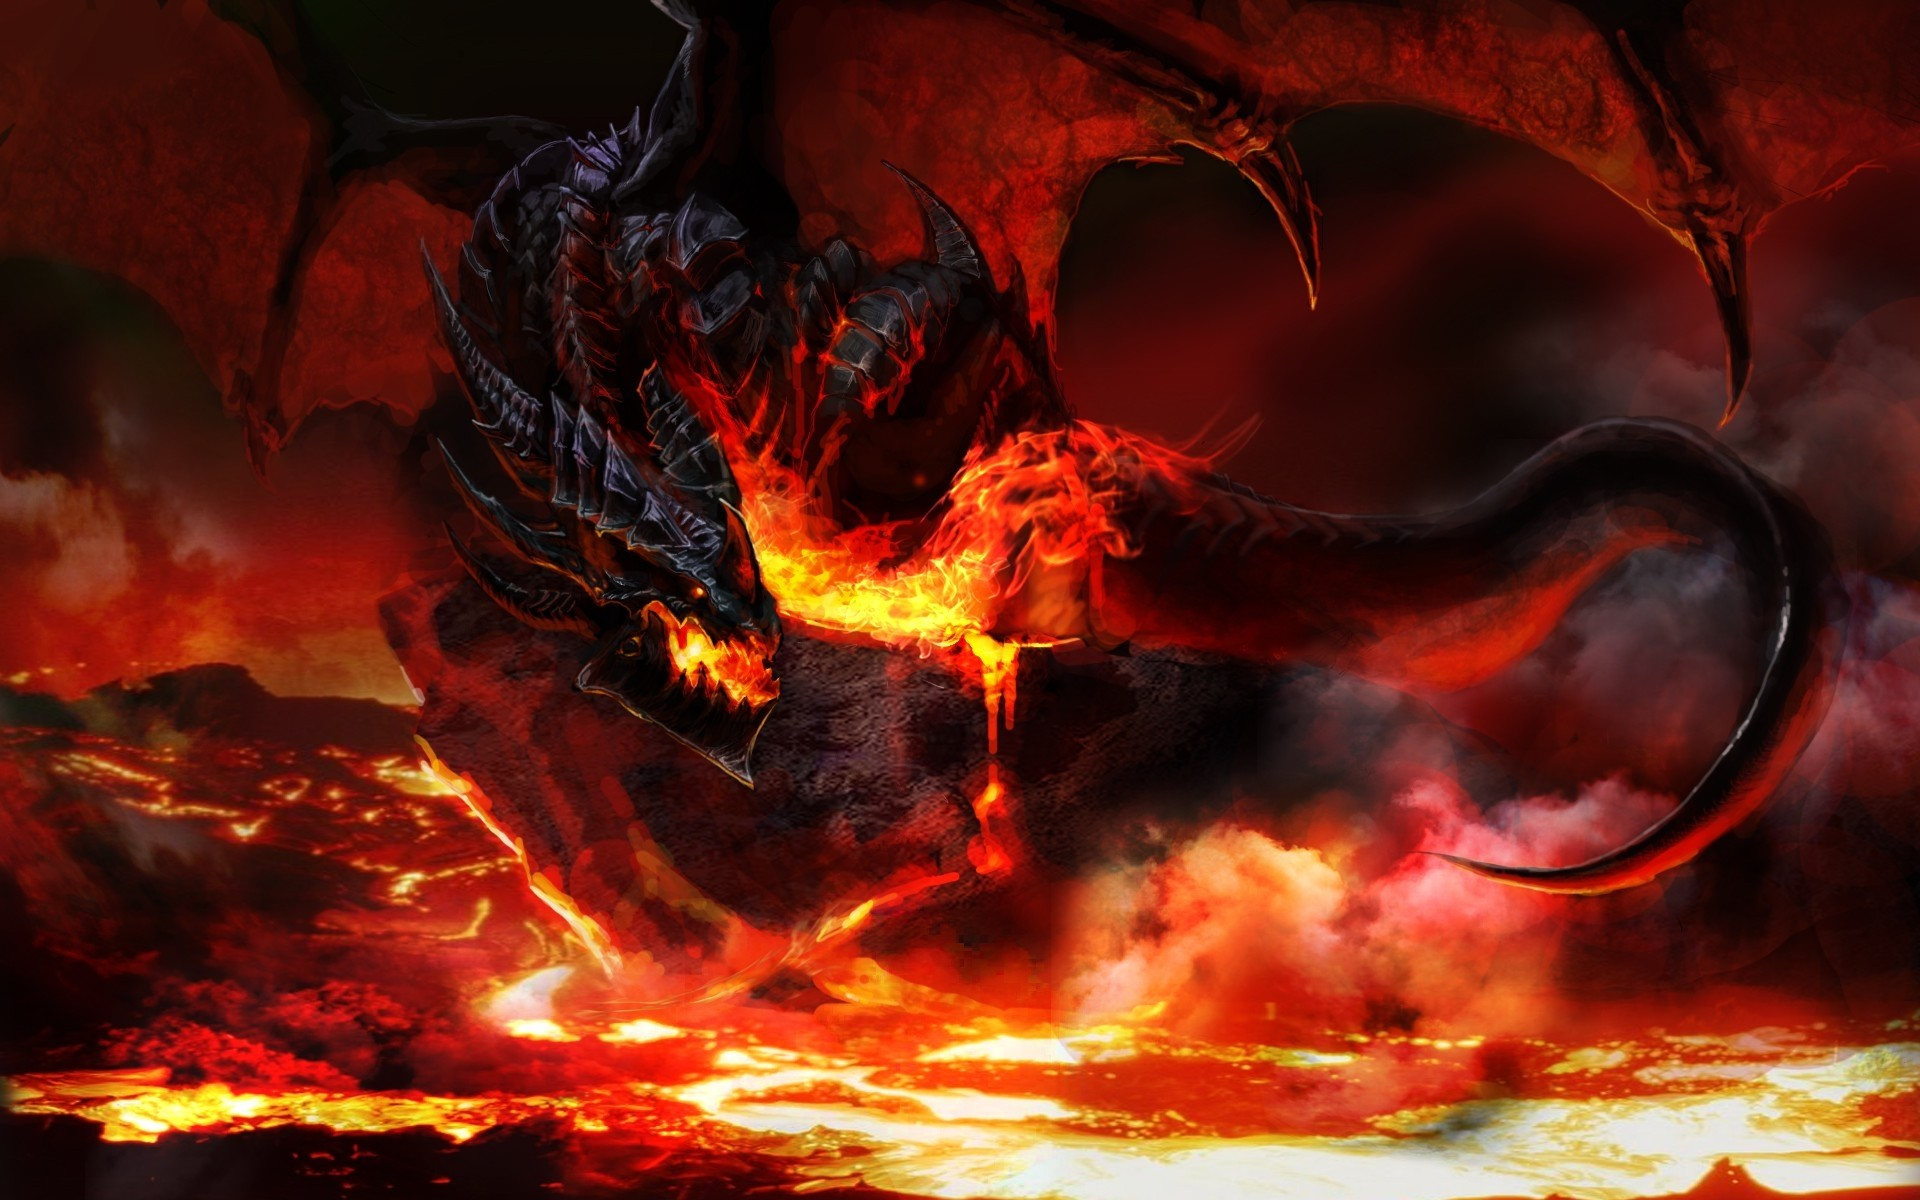 Res: 1920x1200, Fire Dragon wallpapers phone